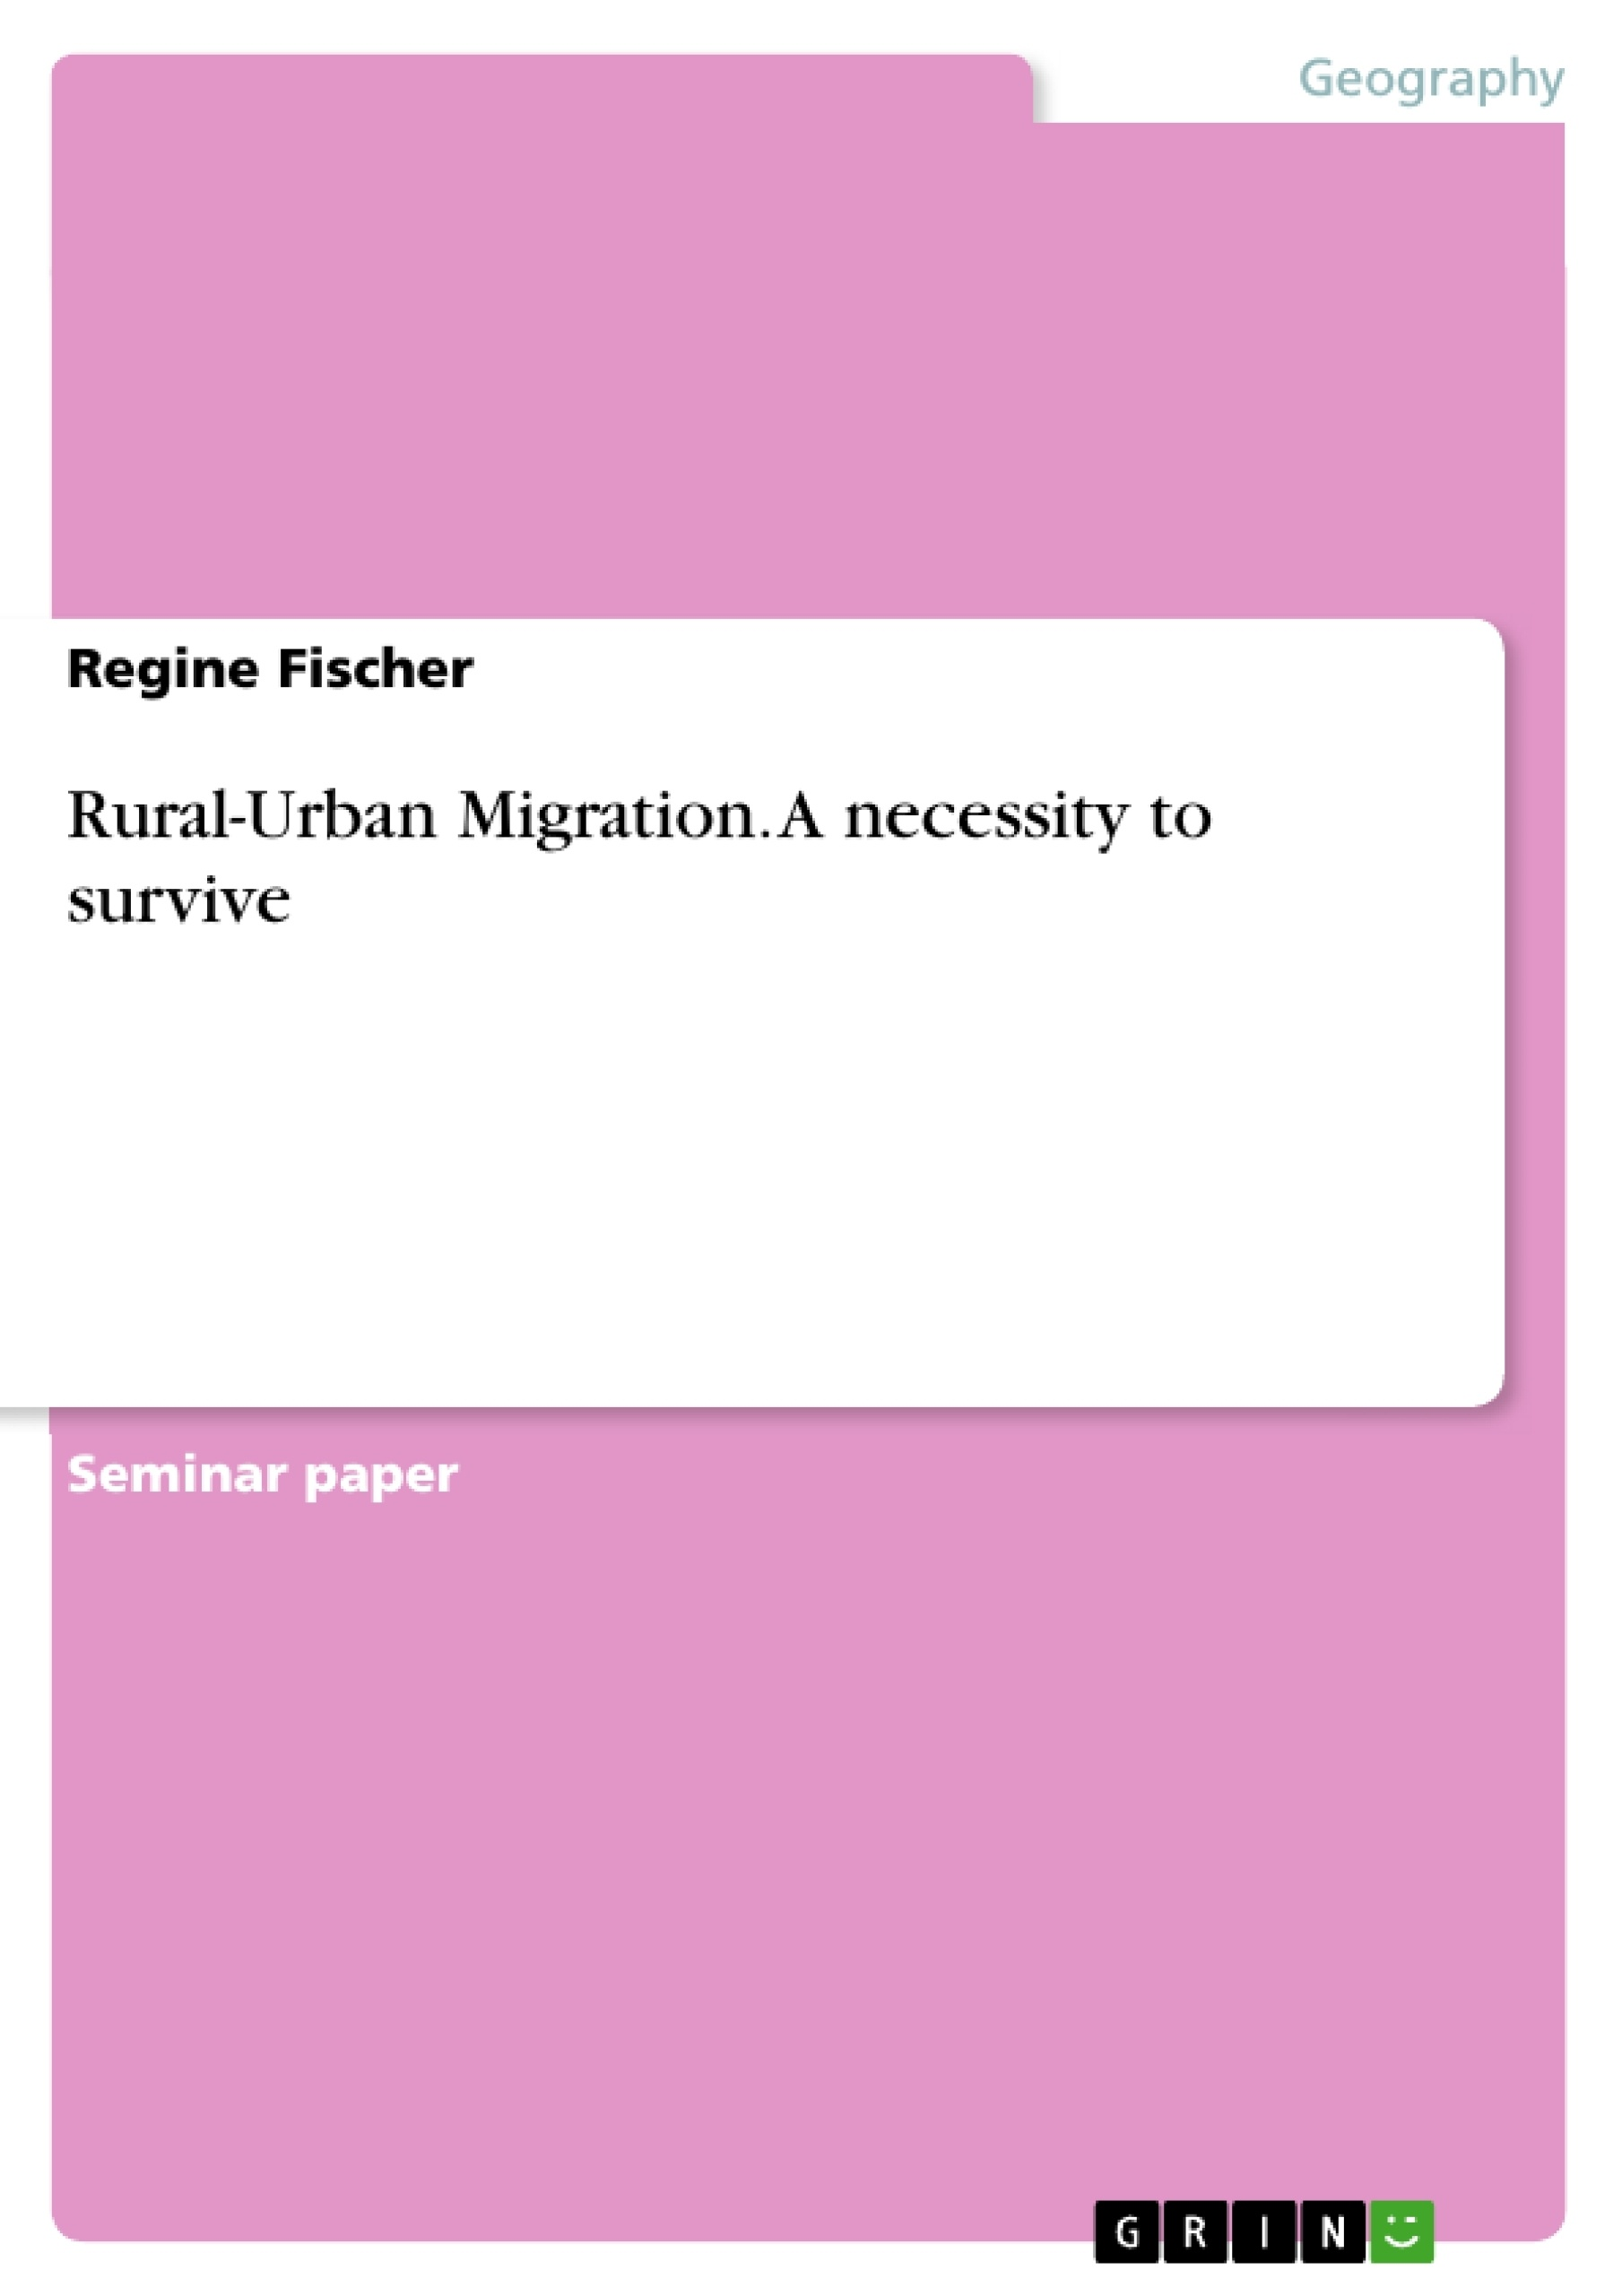 essays on migration rural urban migration a necessity to survive  rural urban migration a necessity to survive publish your rural urban migration a necessity to survive